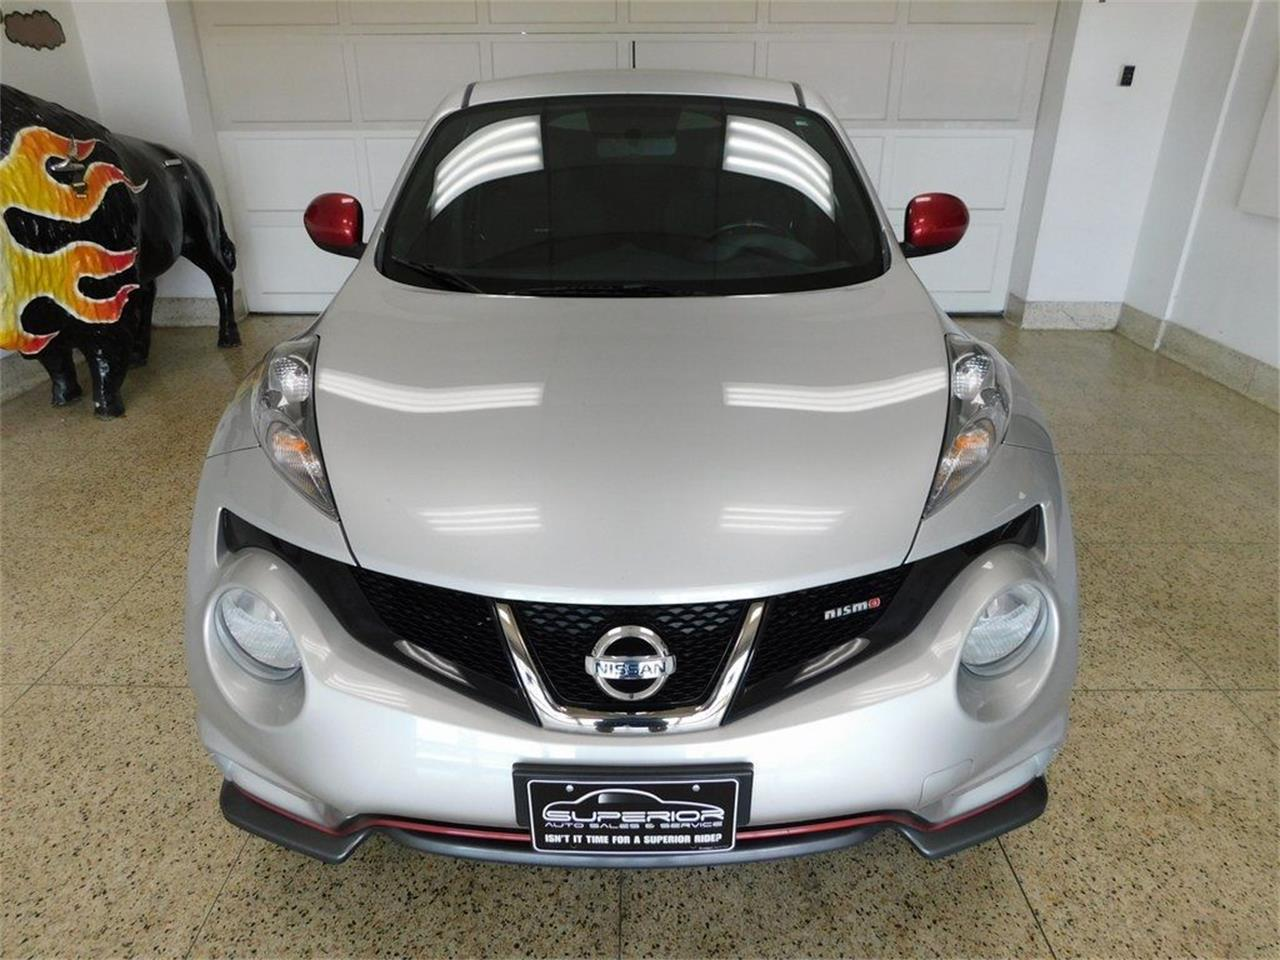 2014 Nissan Juke (CC-1390981) for sale in Hamburg, New York